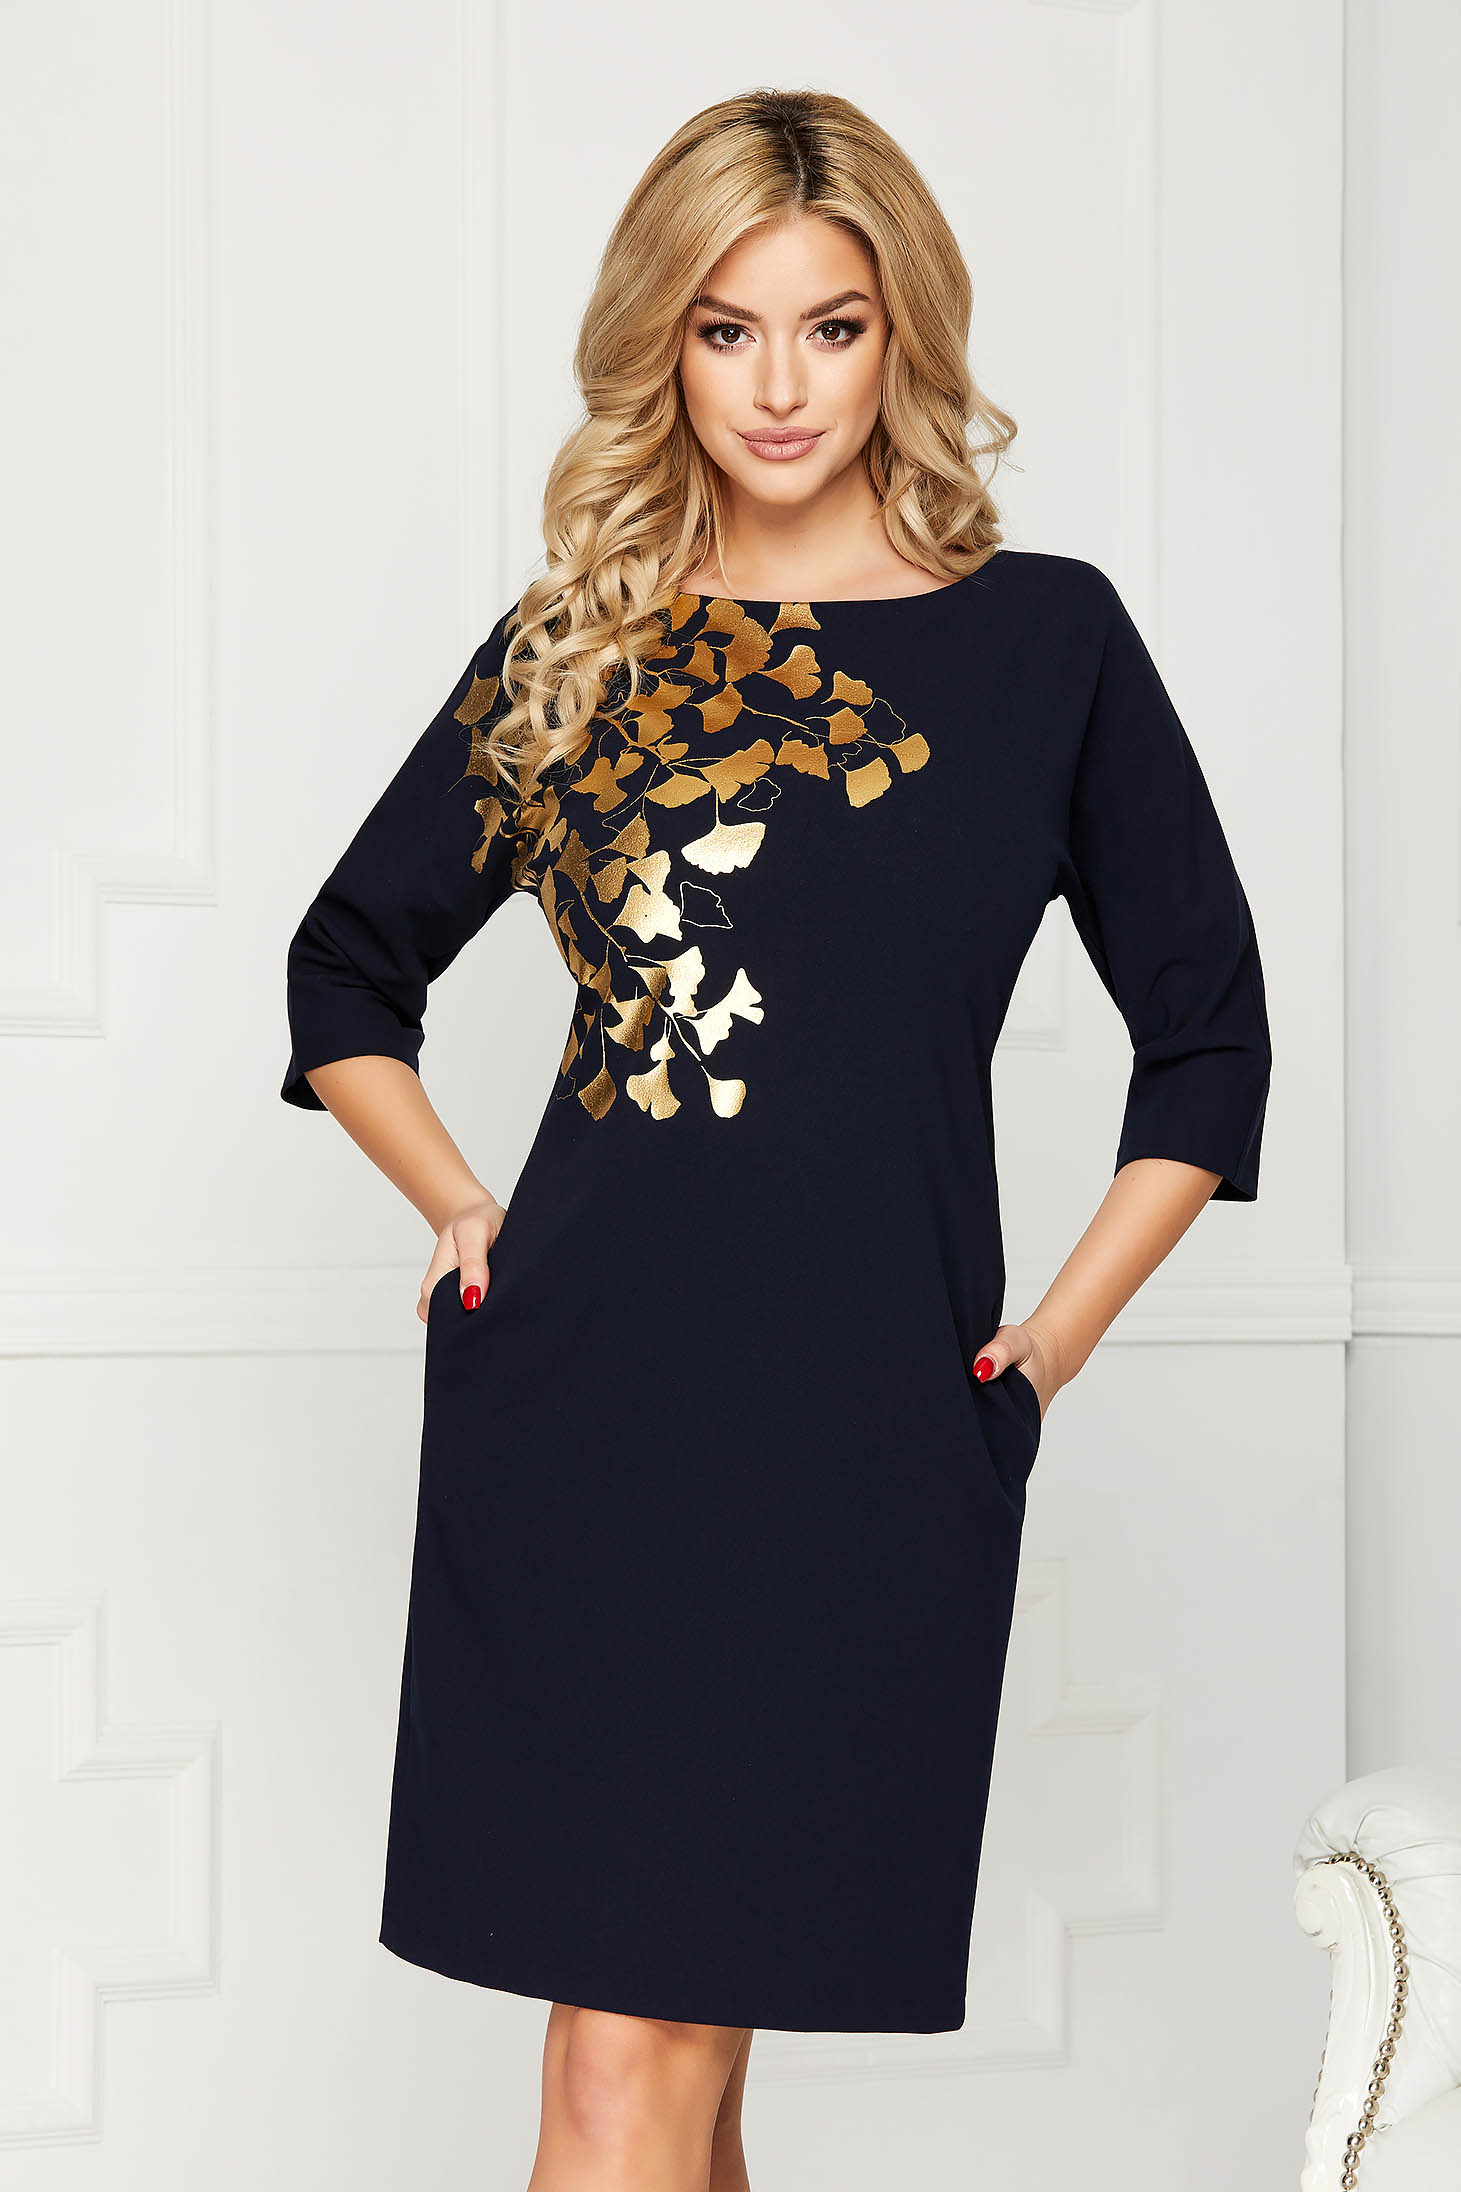 Darkblue dress elegant midi straight cloth with pockets with floral prints